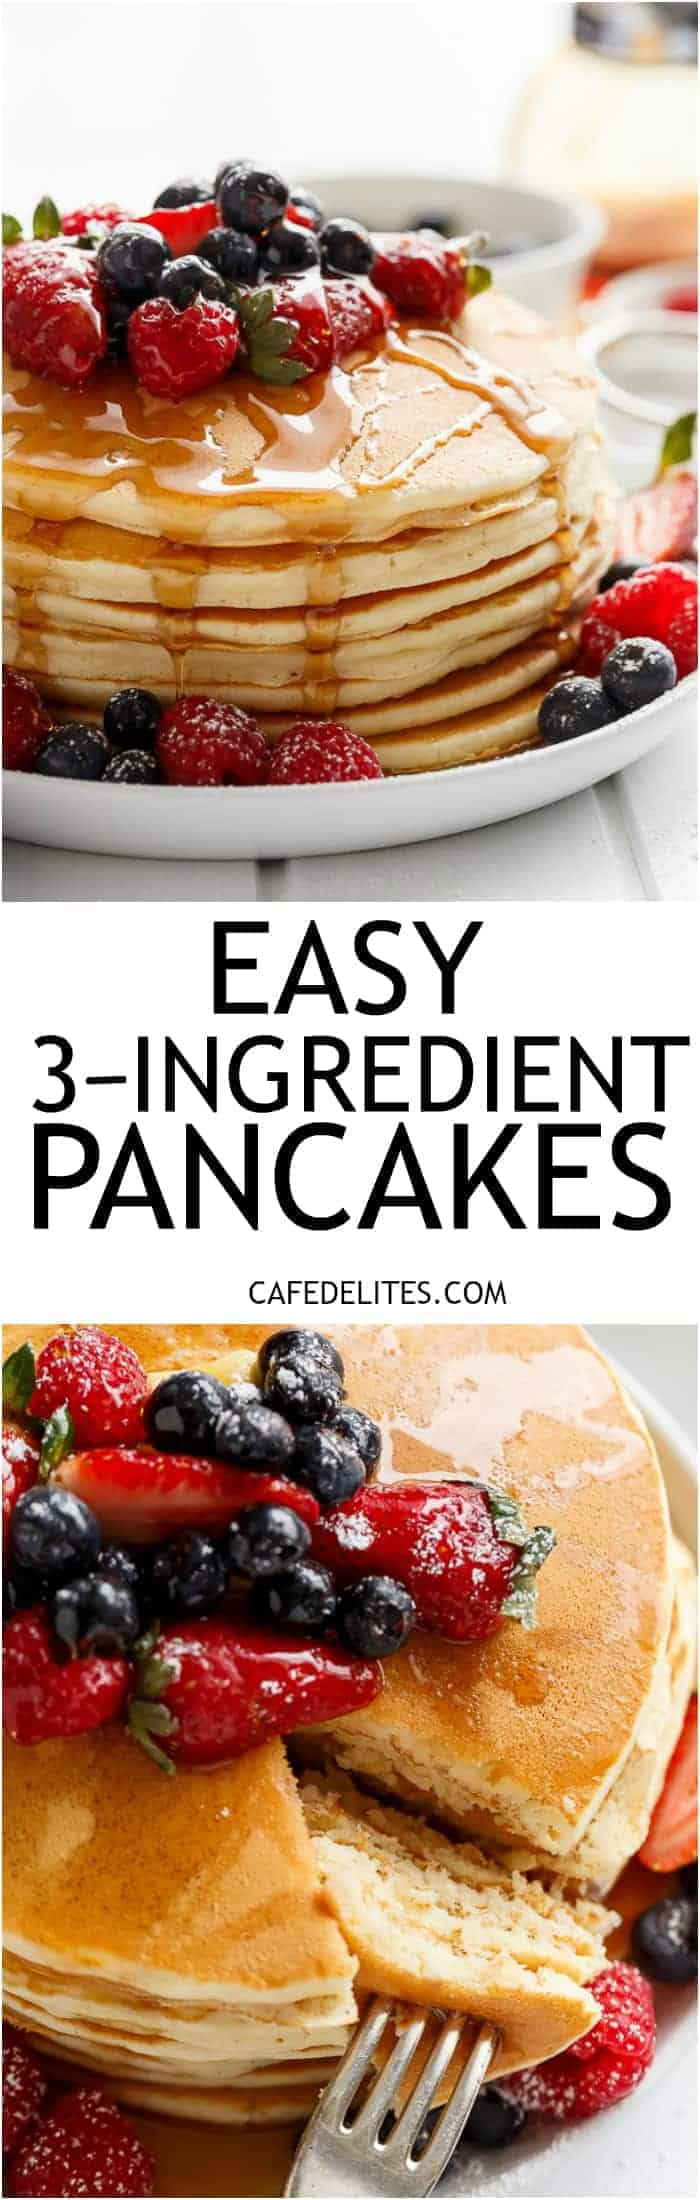 Easy 3 Ingredient Pancakes Cafe Delites